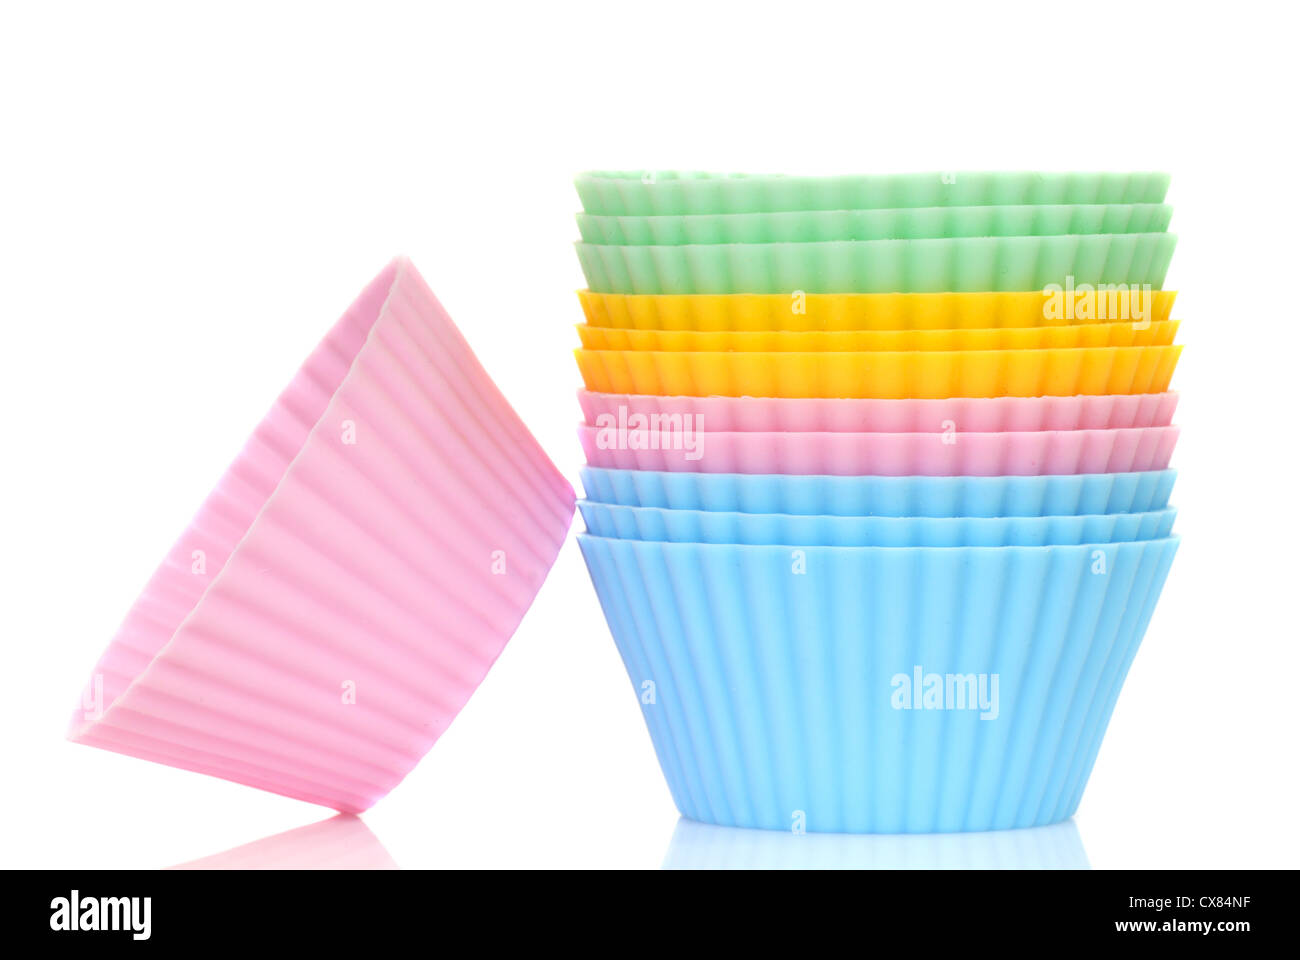 Stack of a variety of colorful cupcake liners in pastel colors - Stock Image